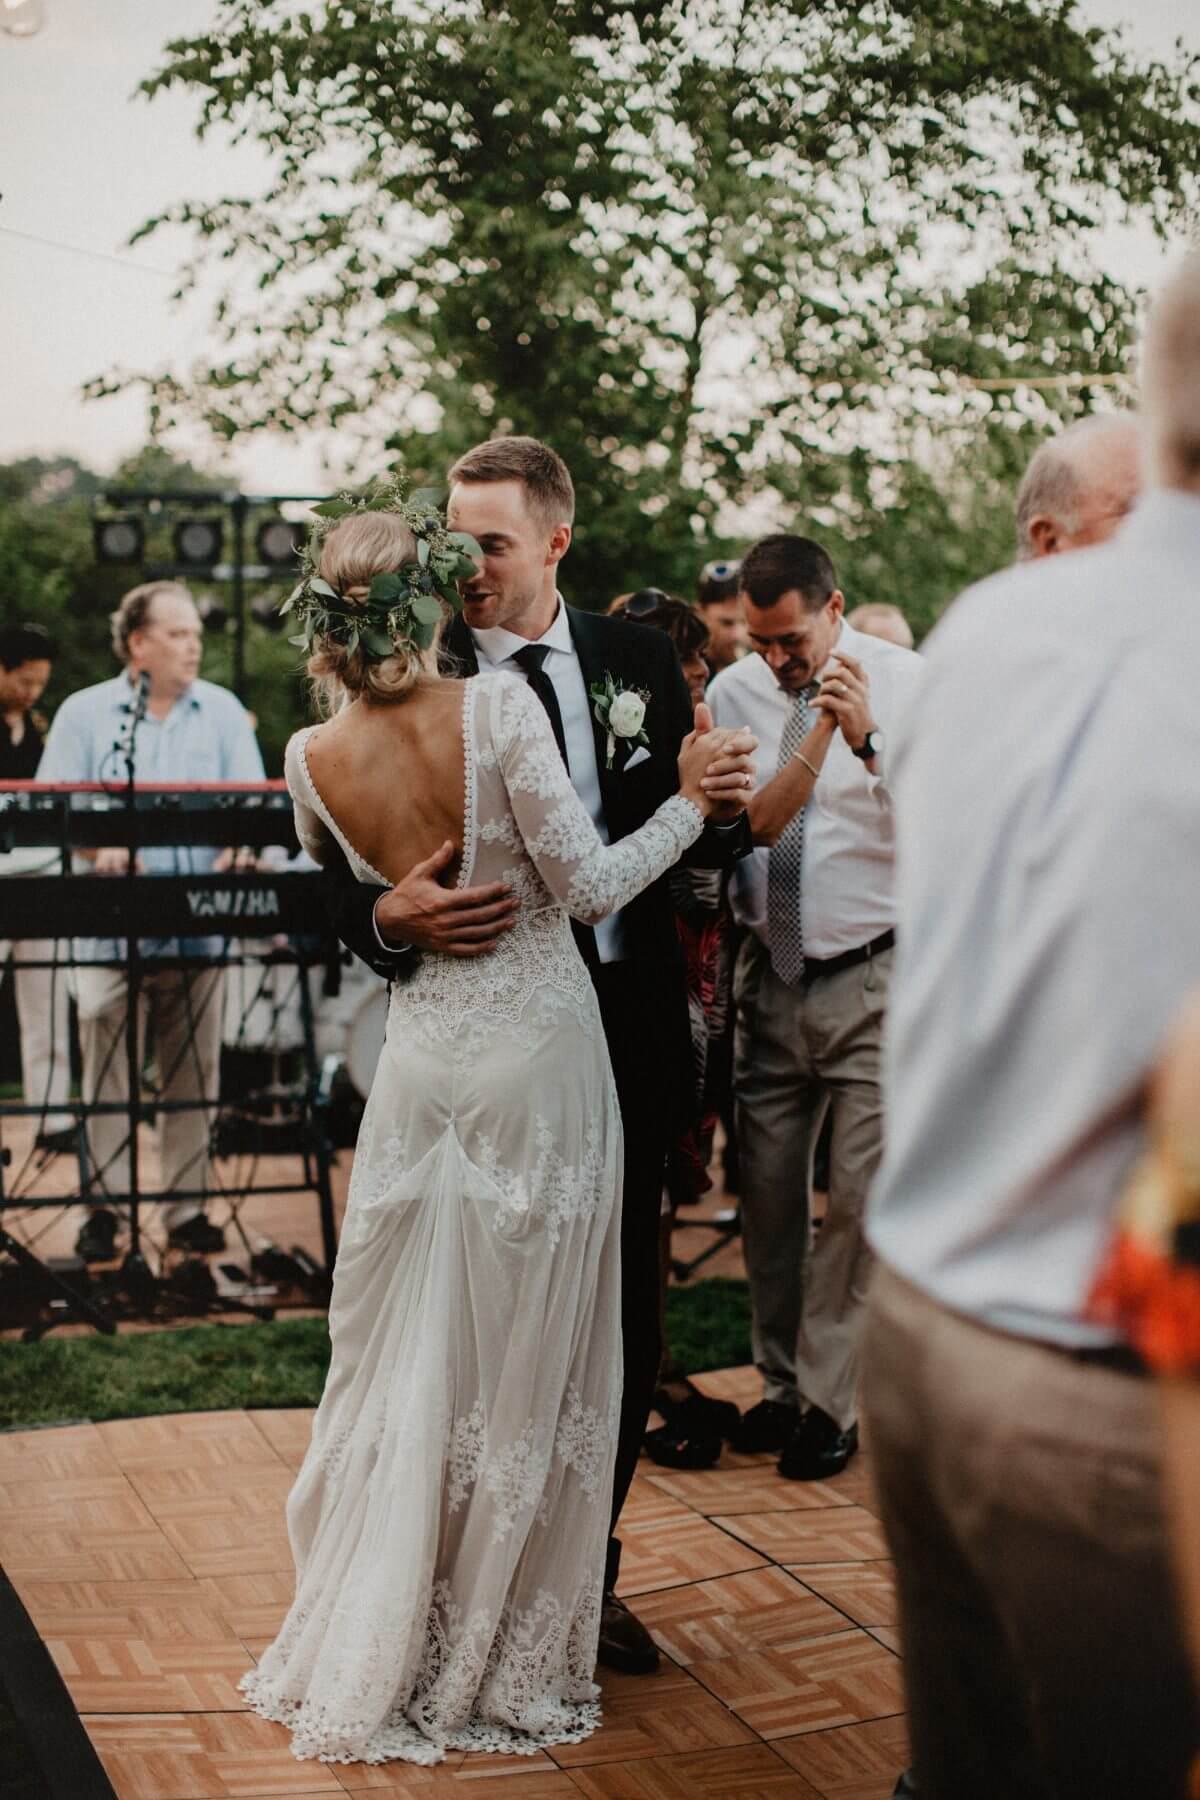 Crushing on this Boho Bride in her Flowy Wedding Dress